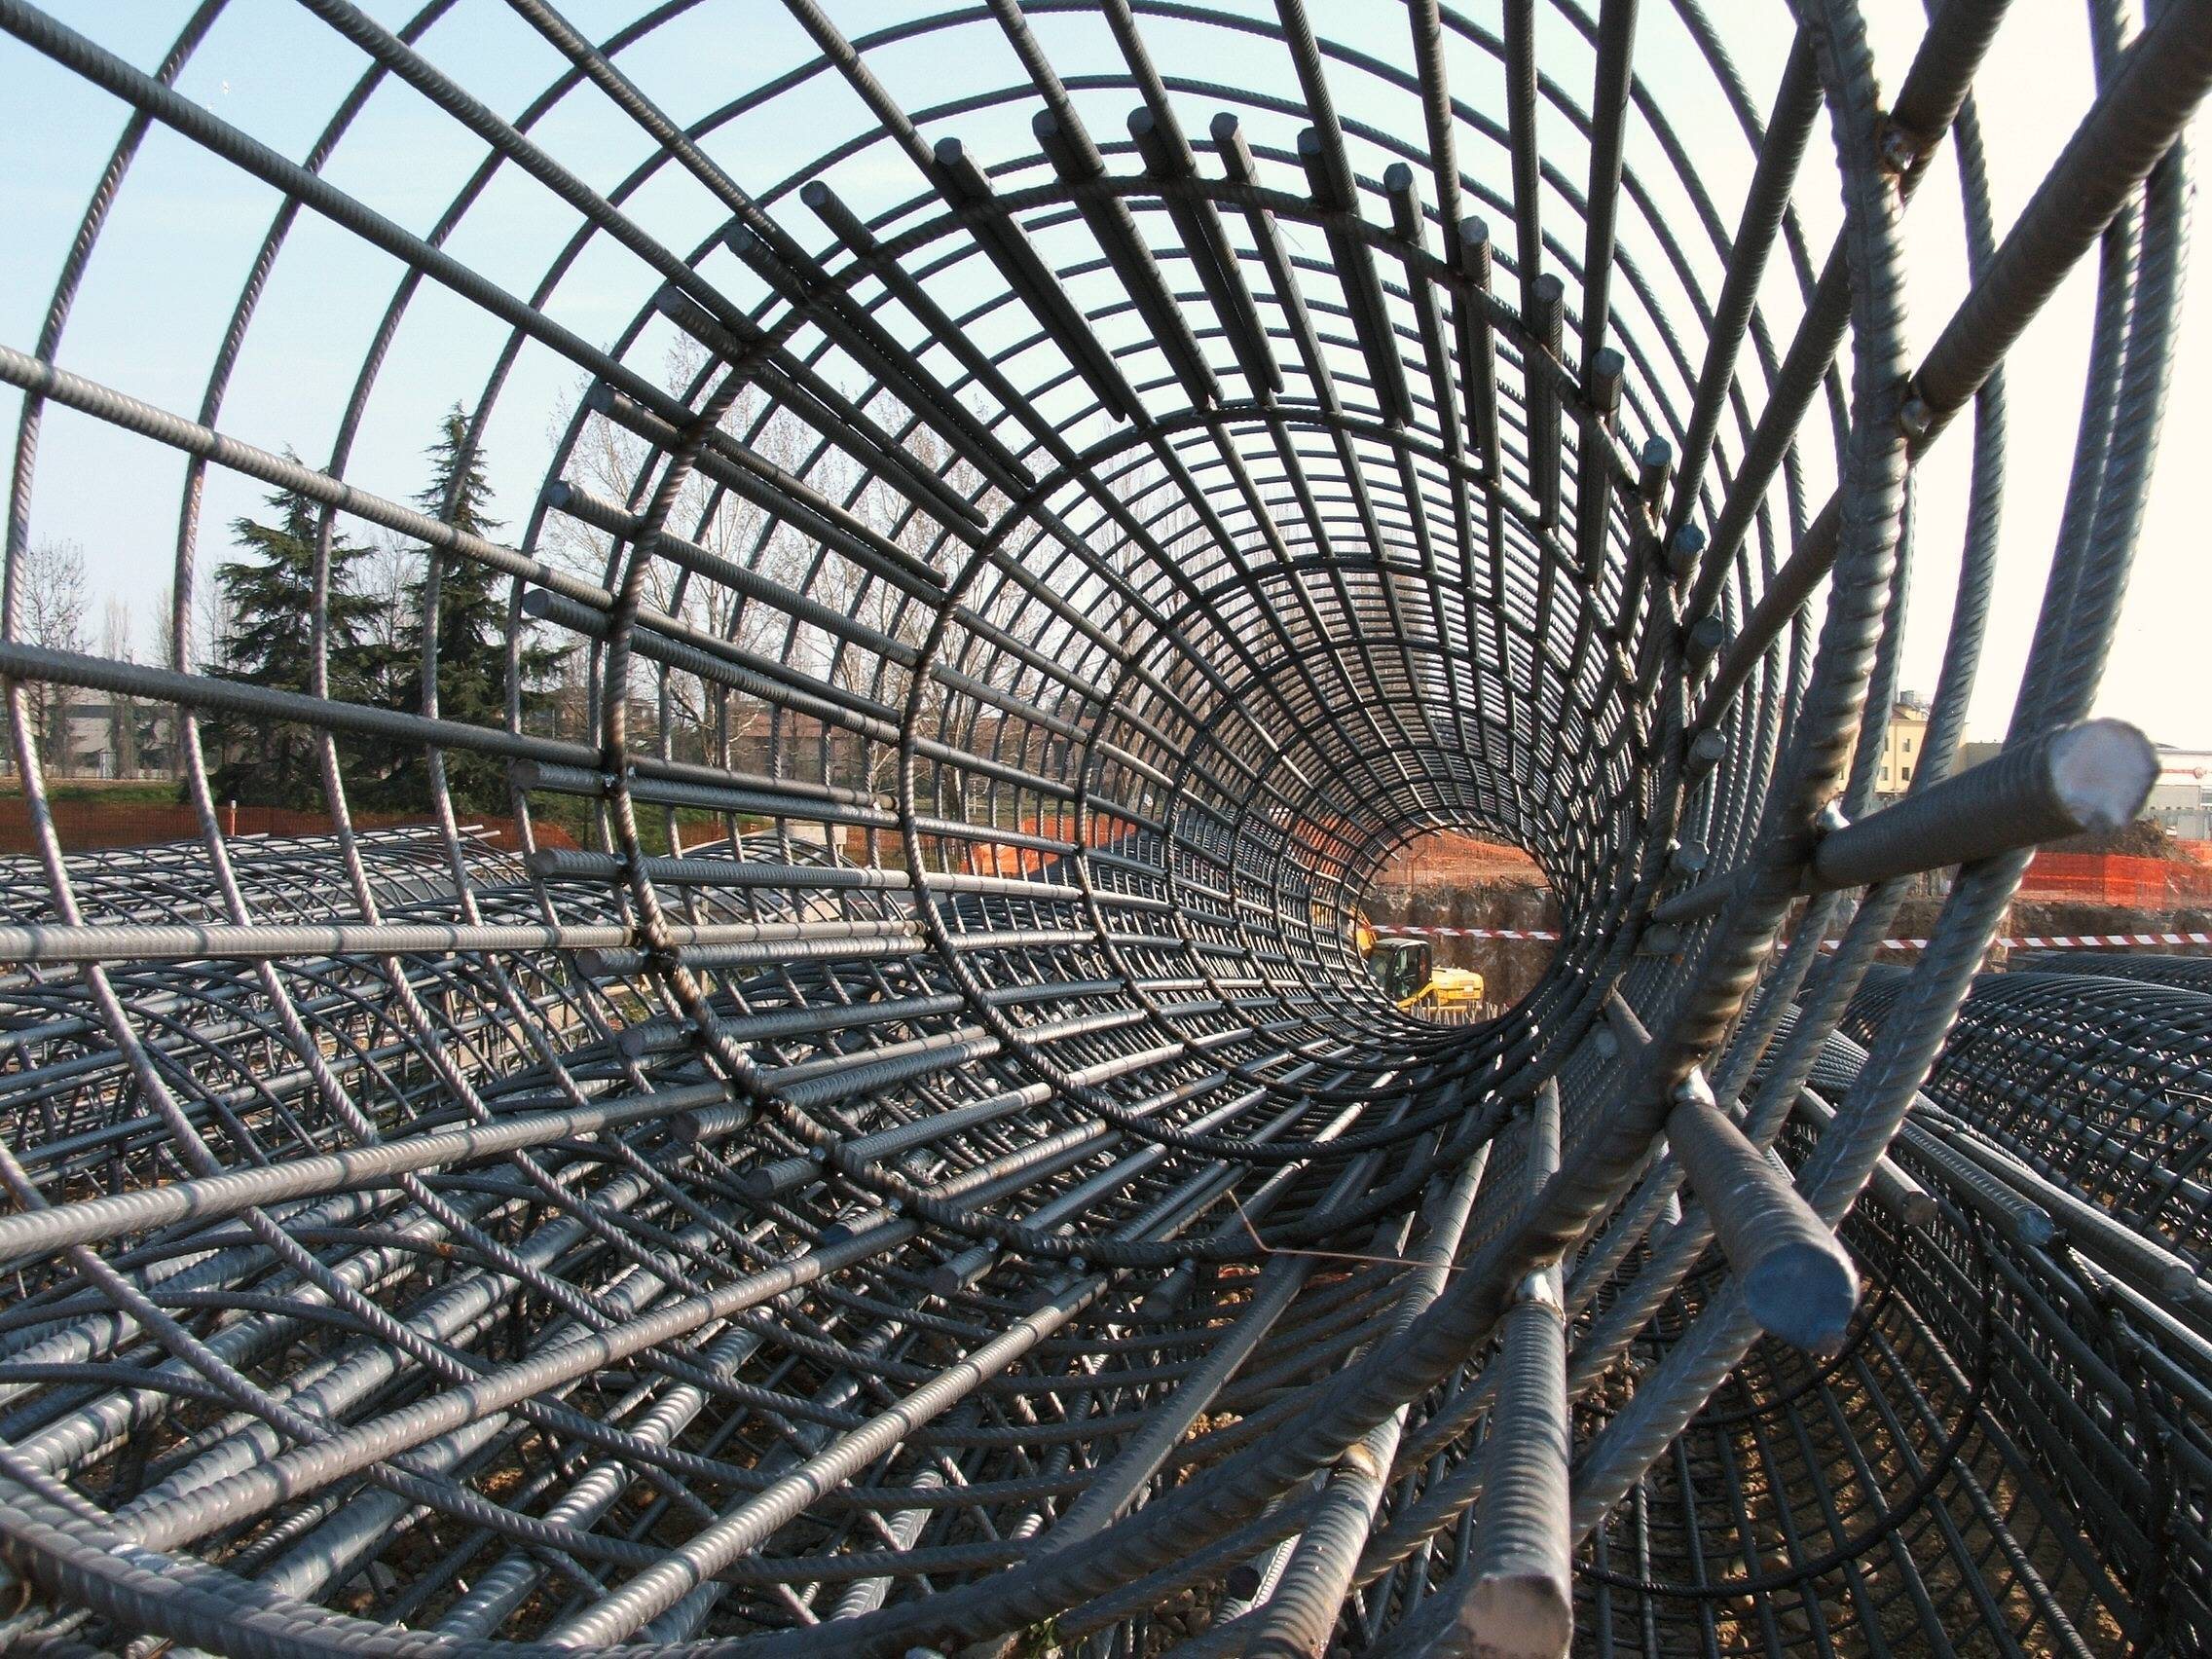 Galvanized welded rebar concrete mesh sheets.